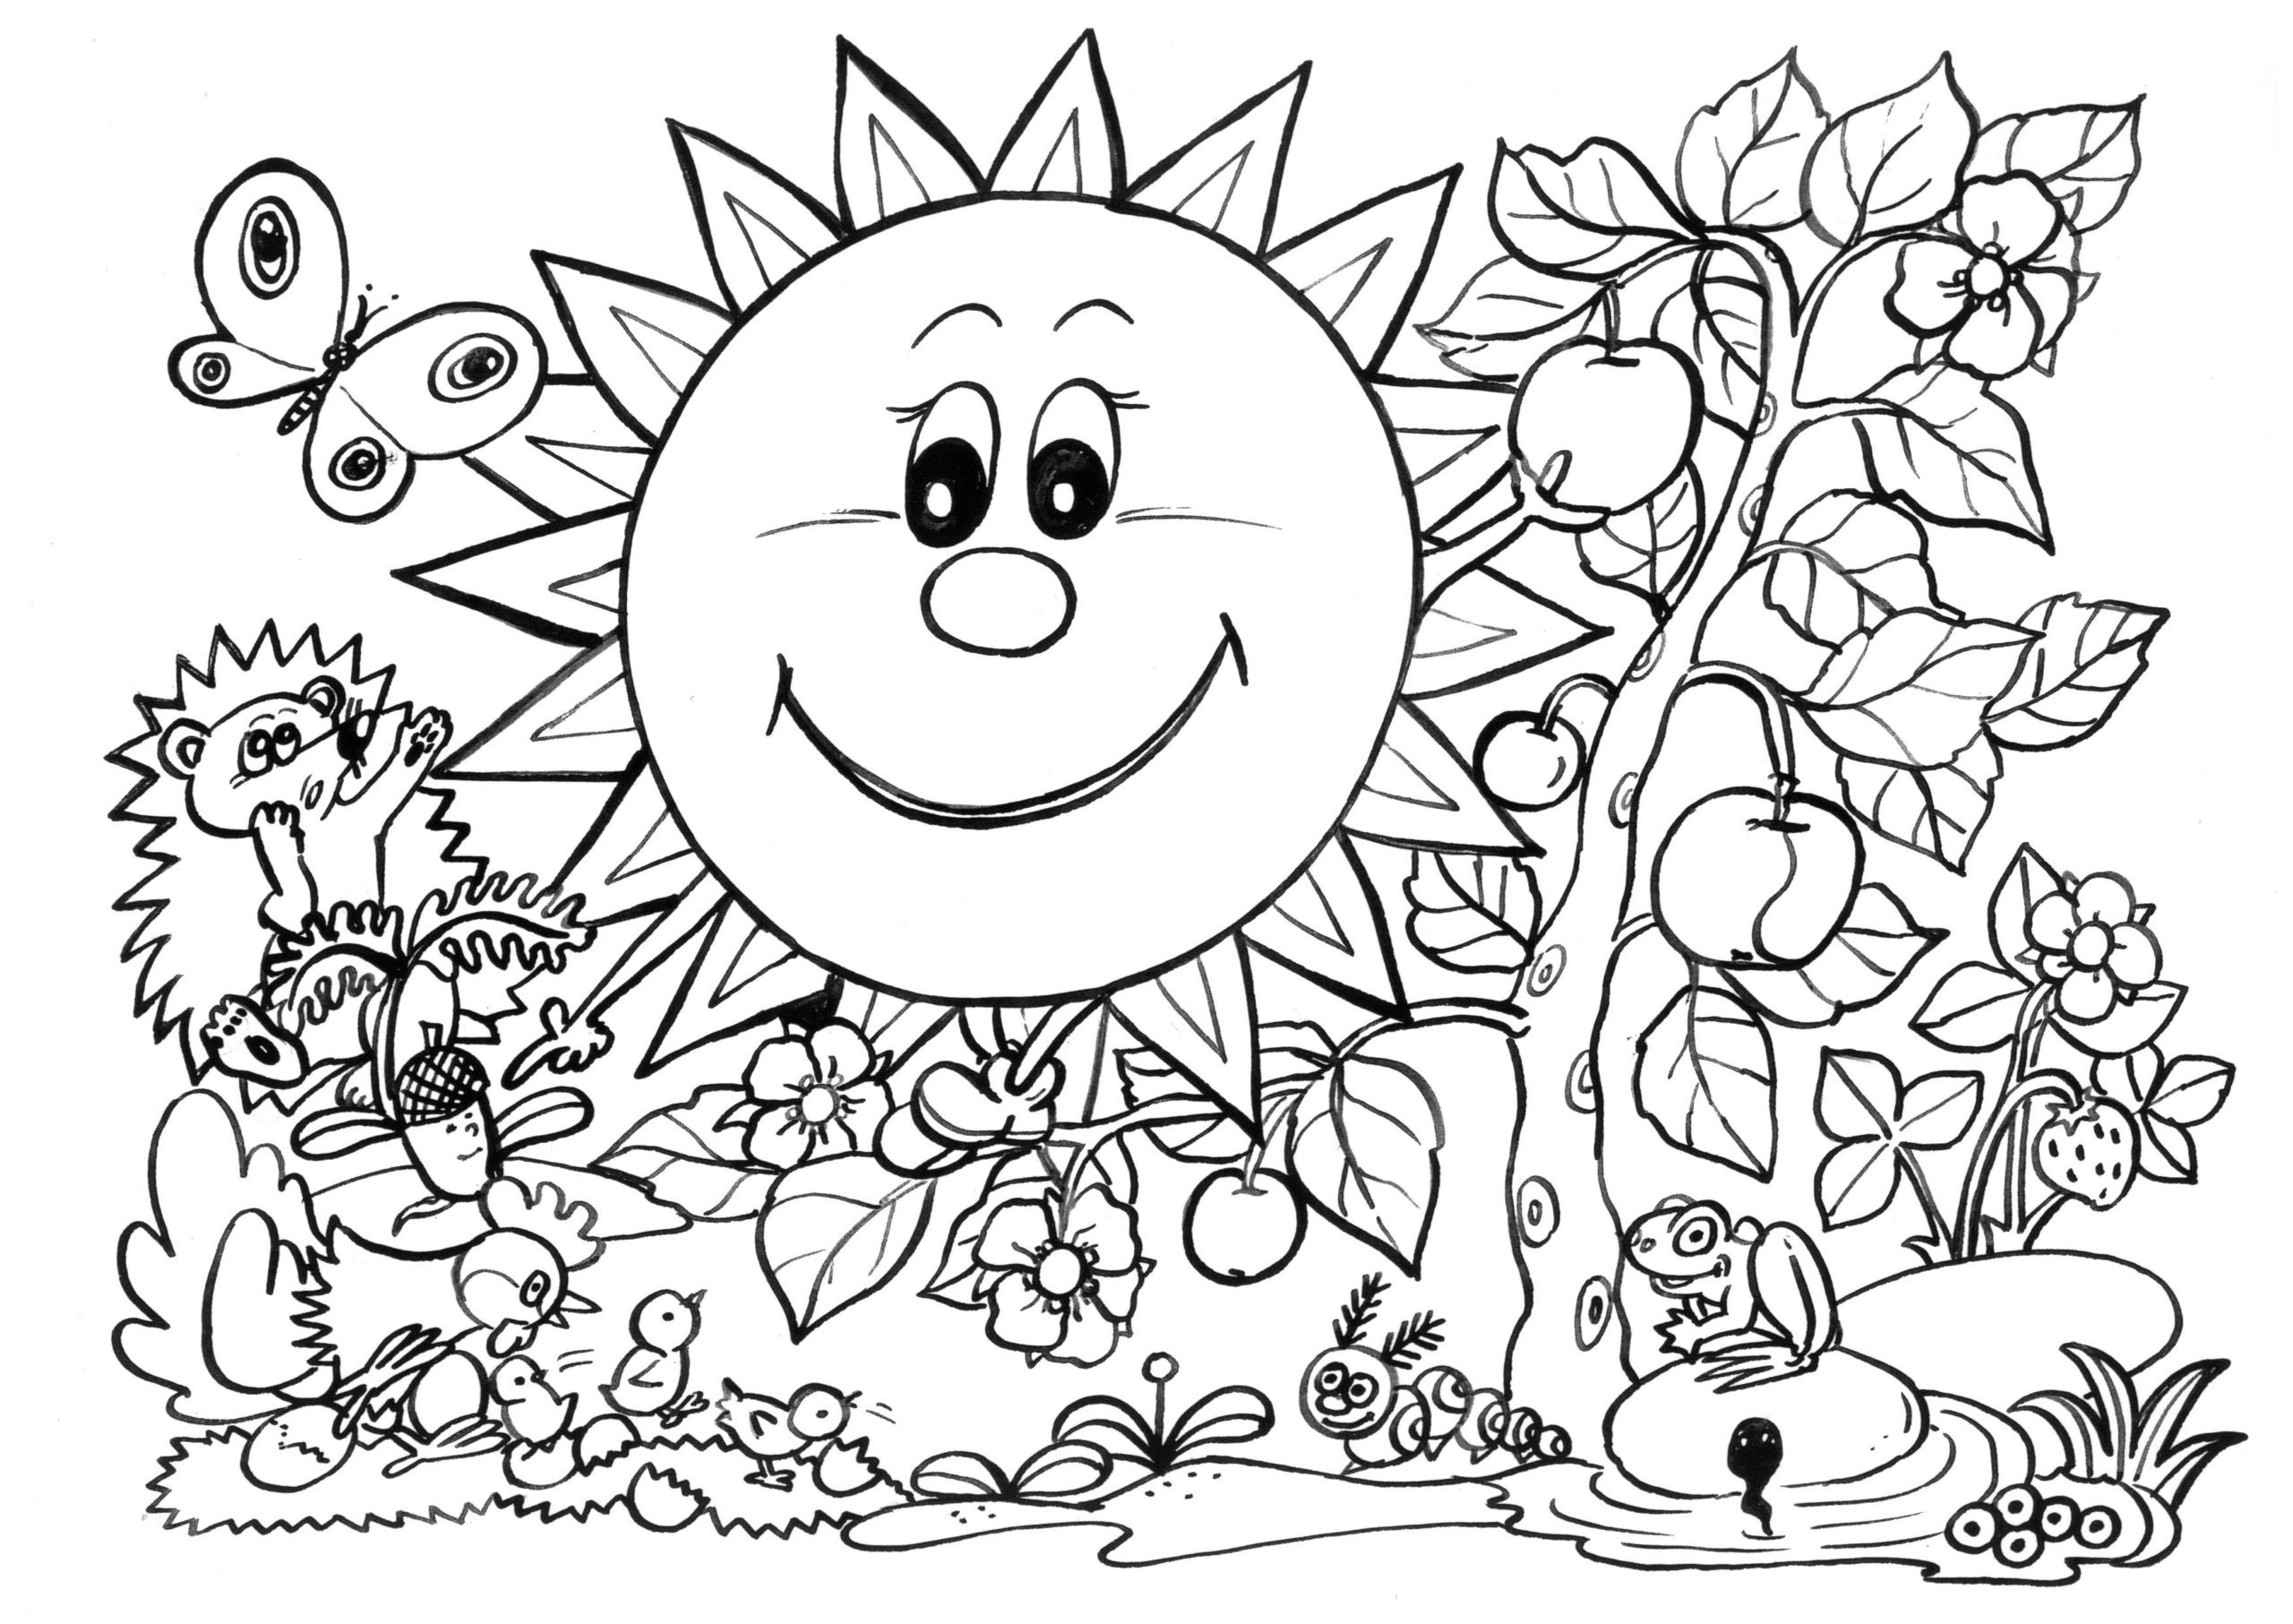 Preschool Diamond Shape Worksheets Diamond Coloring Sheet Pages Spring Break Worksheets for